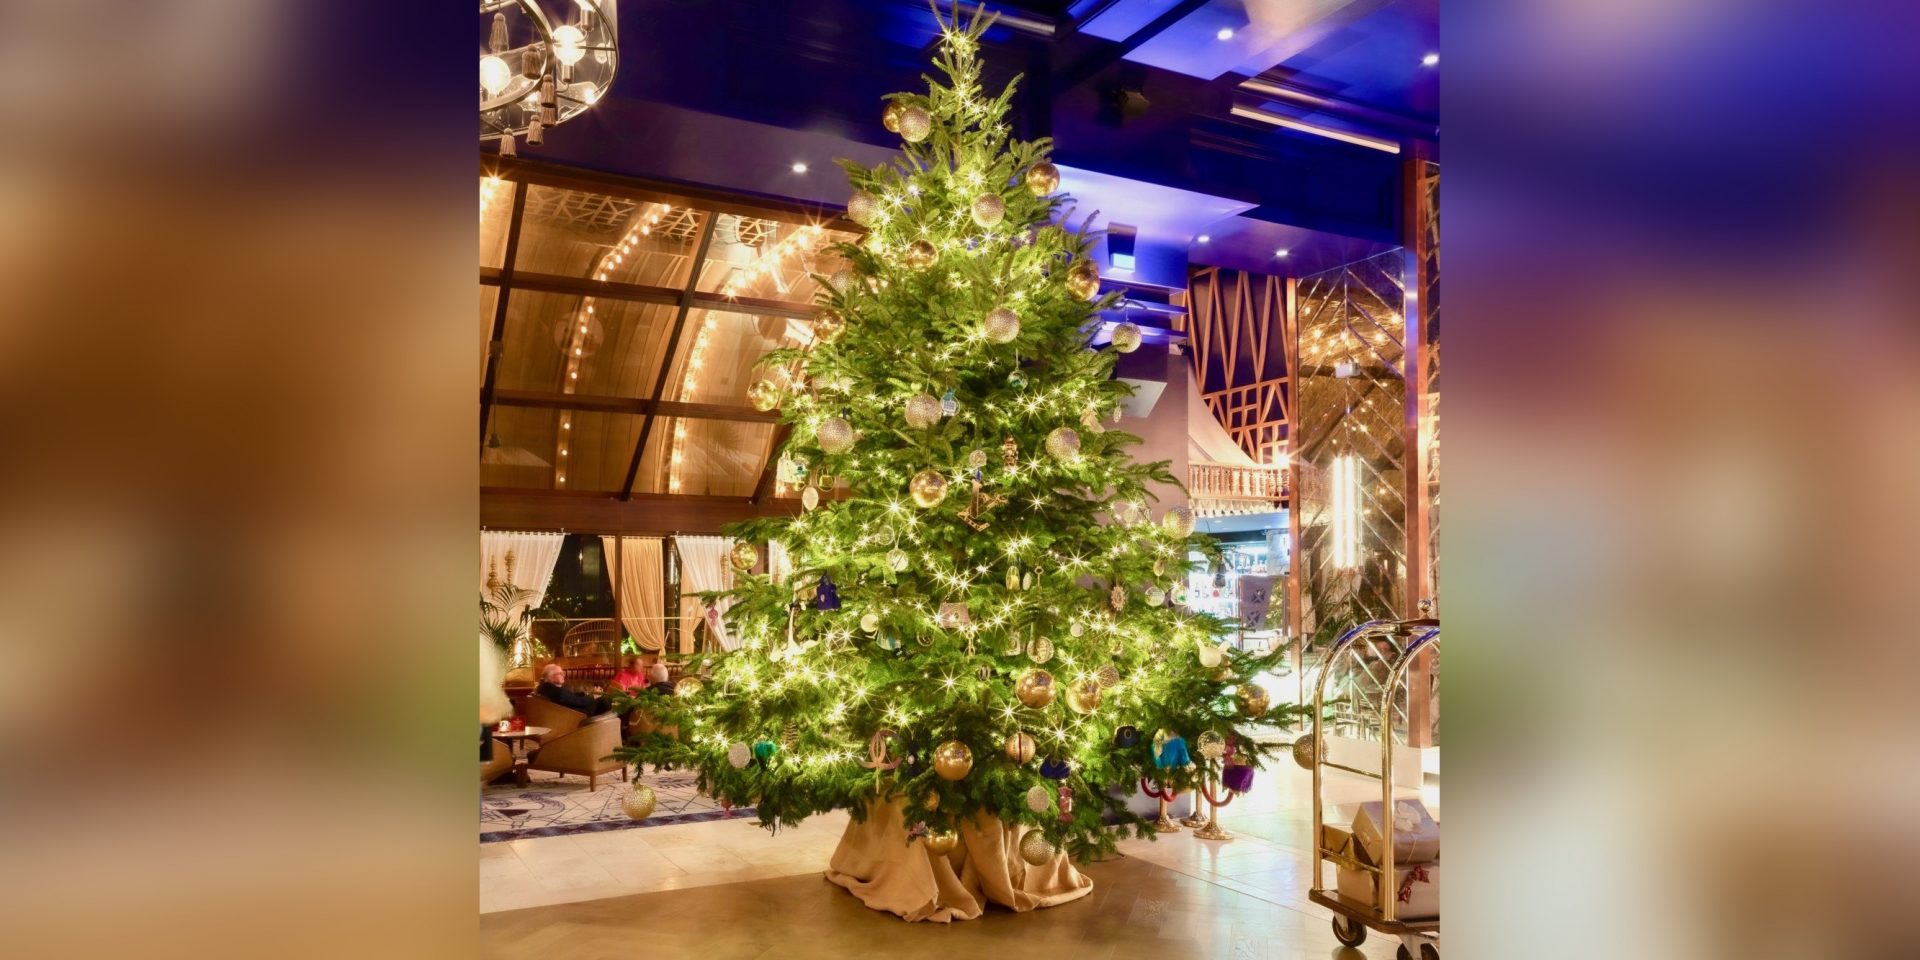 This hotel in Spain may have the world's most expensive Christmas Tree